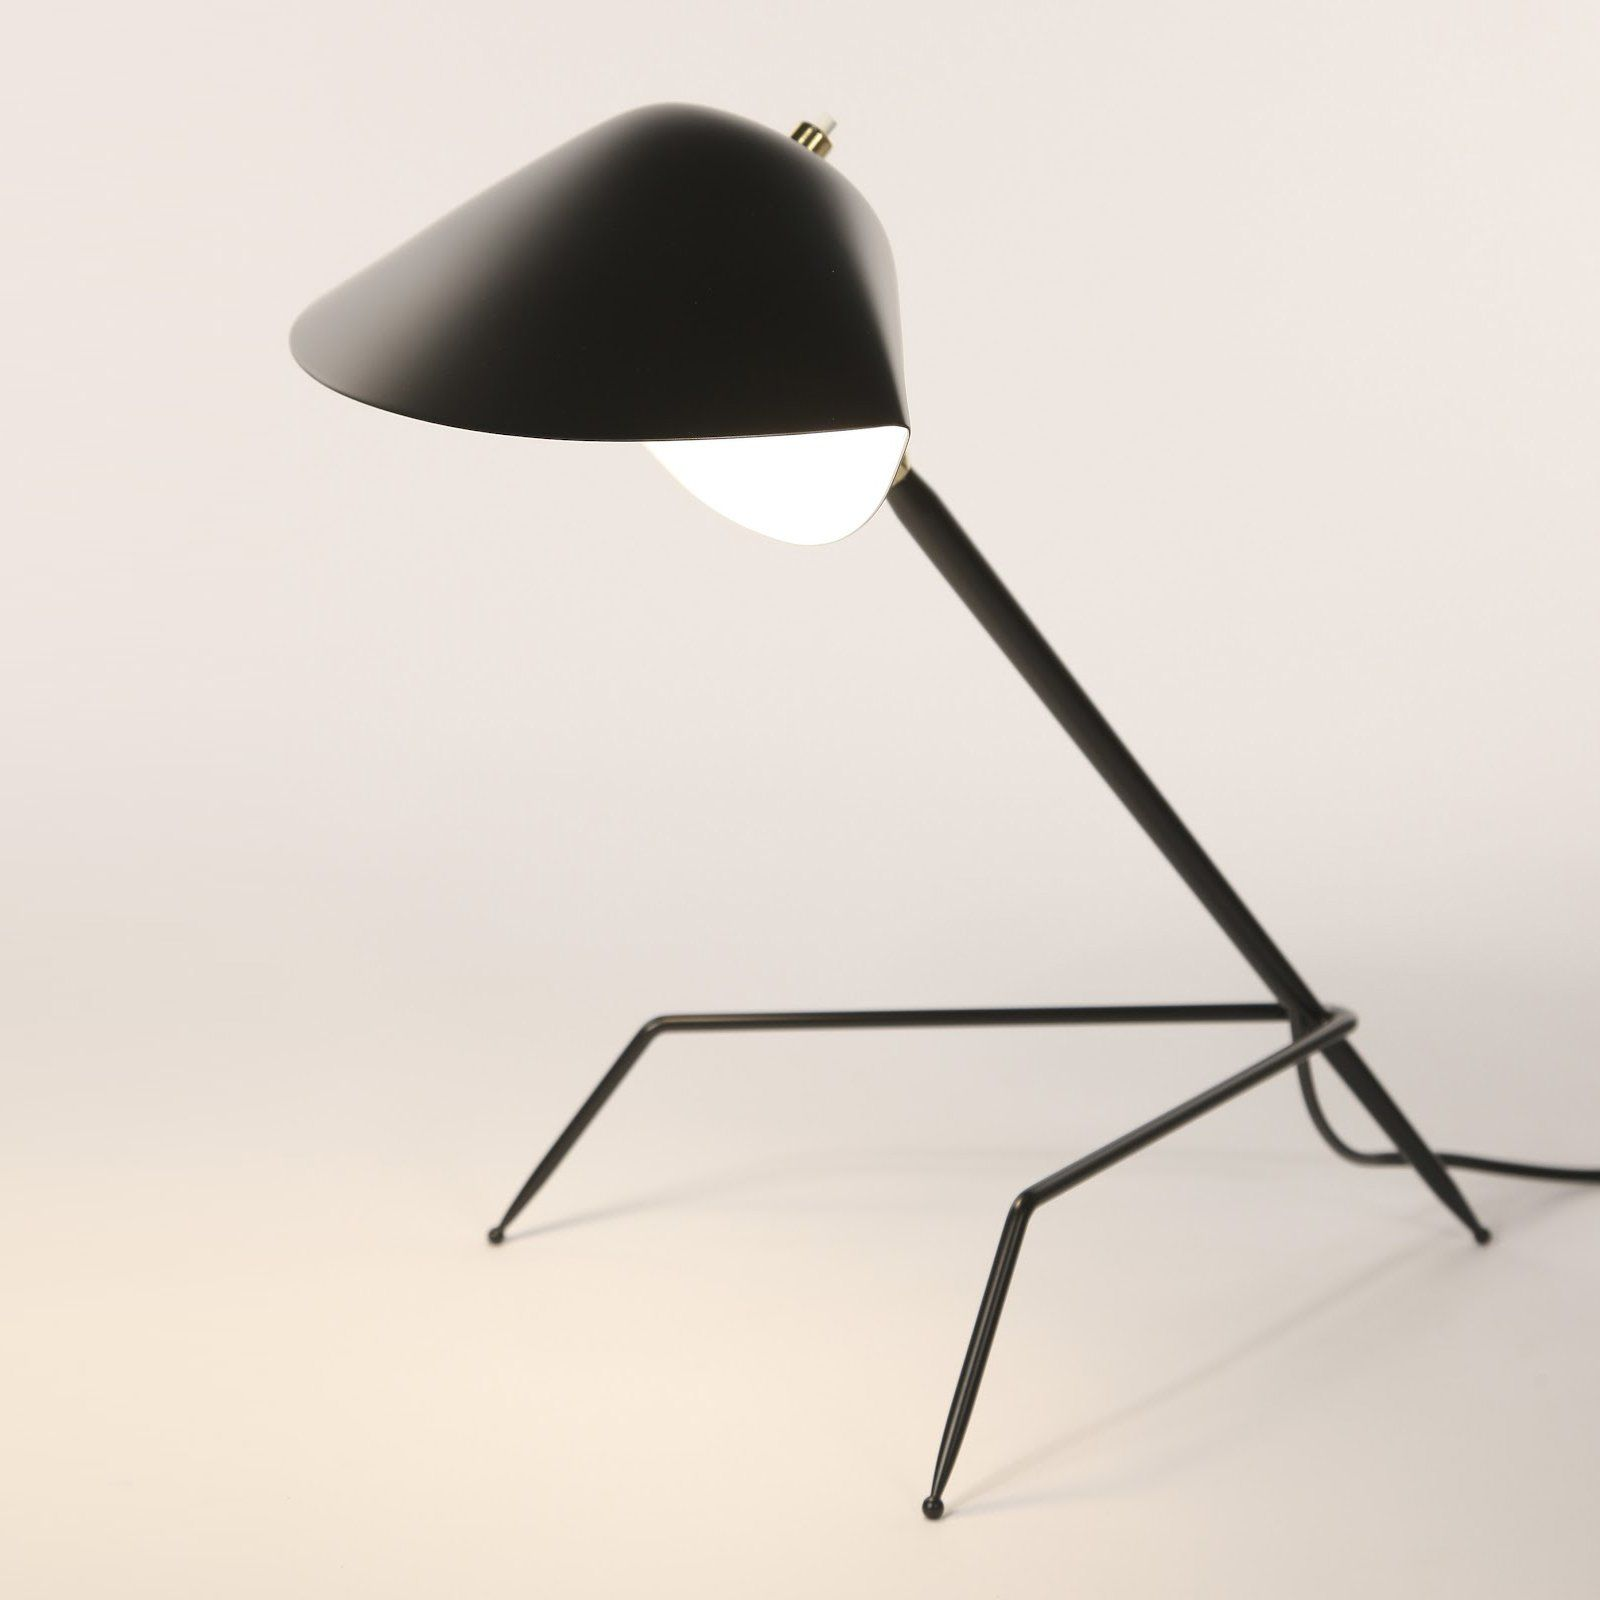 Tripod Desk Lamp By Serge Mouille 1953 Design Based On A Mussel Shell Handcrafted By Mouille Lamp Contemporary Light Fixtures Desk Lamp